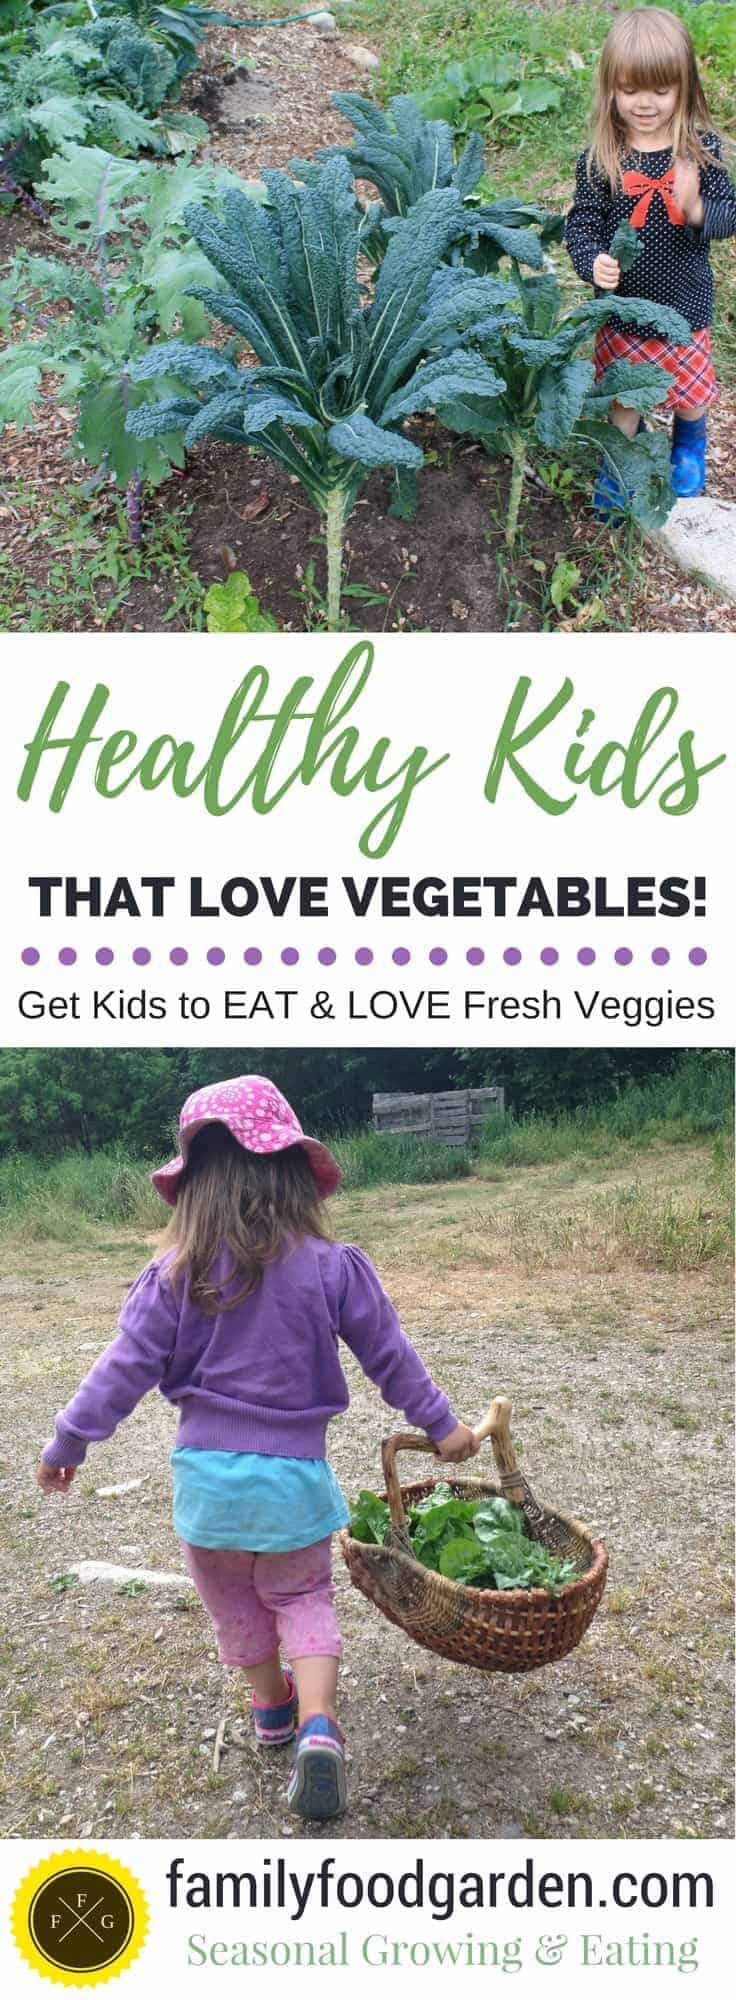 When kids know & understand where their food comes from they WANT to eat it!